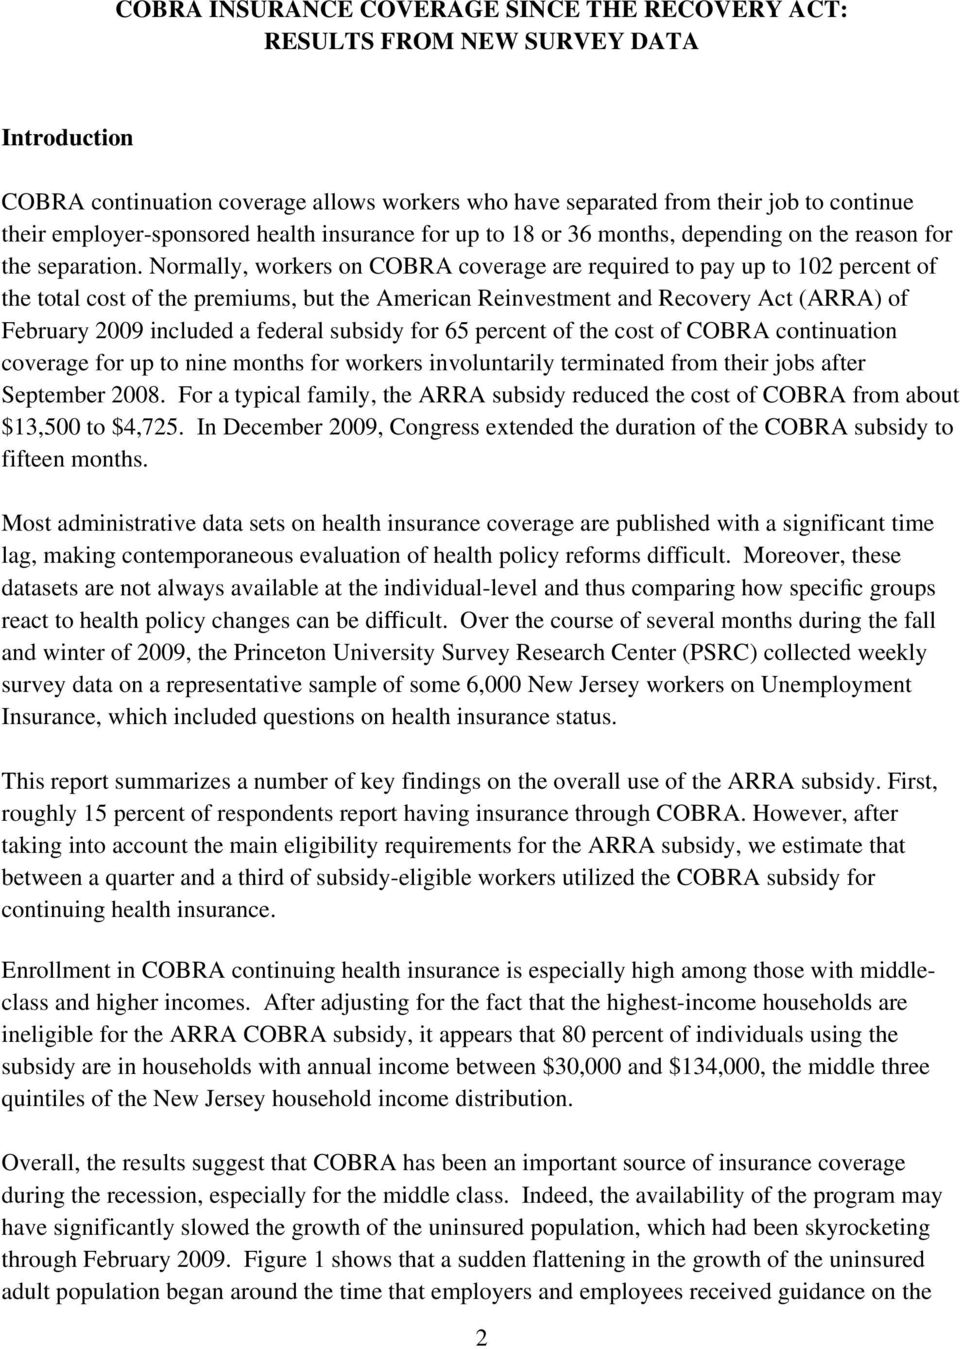 Normally, workers on COBRA coverage are required to pay up to 102 percent of the total cost of the premiums, but the American Reinvestment and Recovery Act (ARRA) of February 2009 included a federal